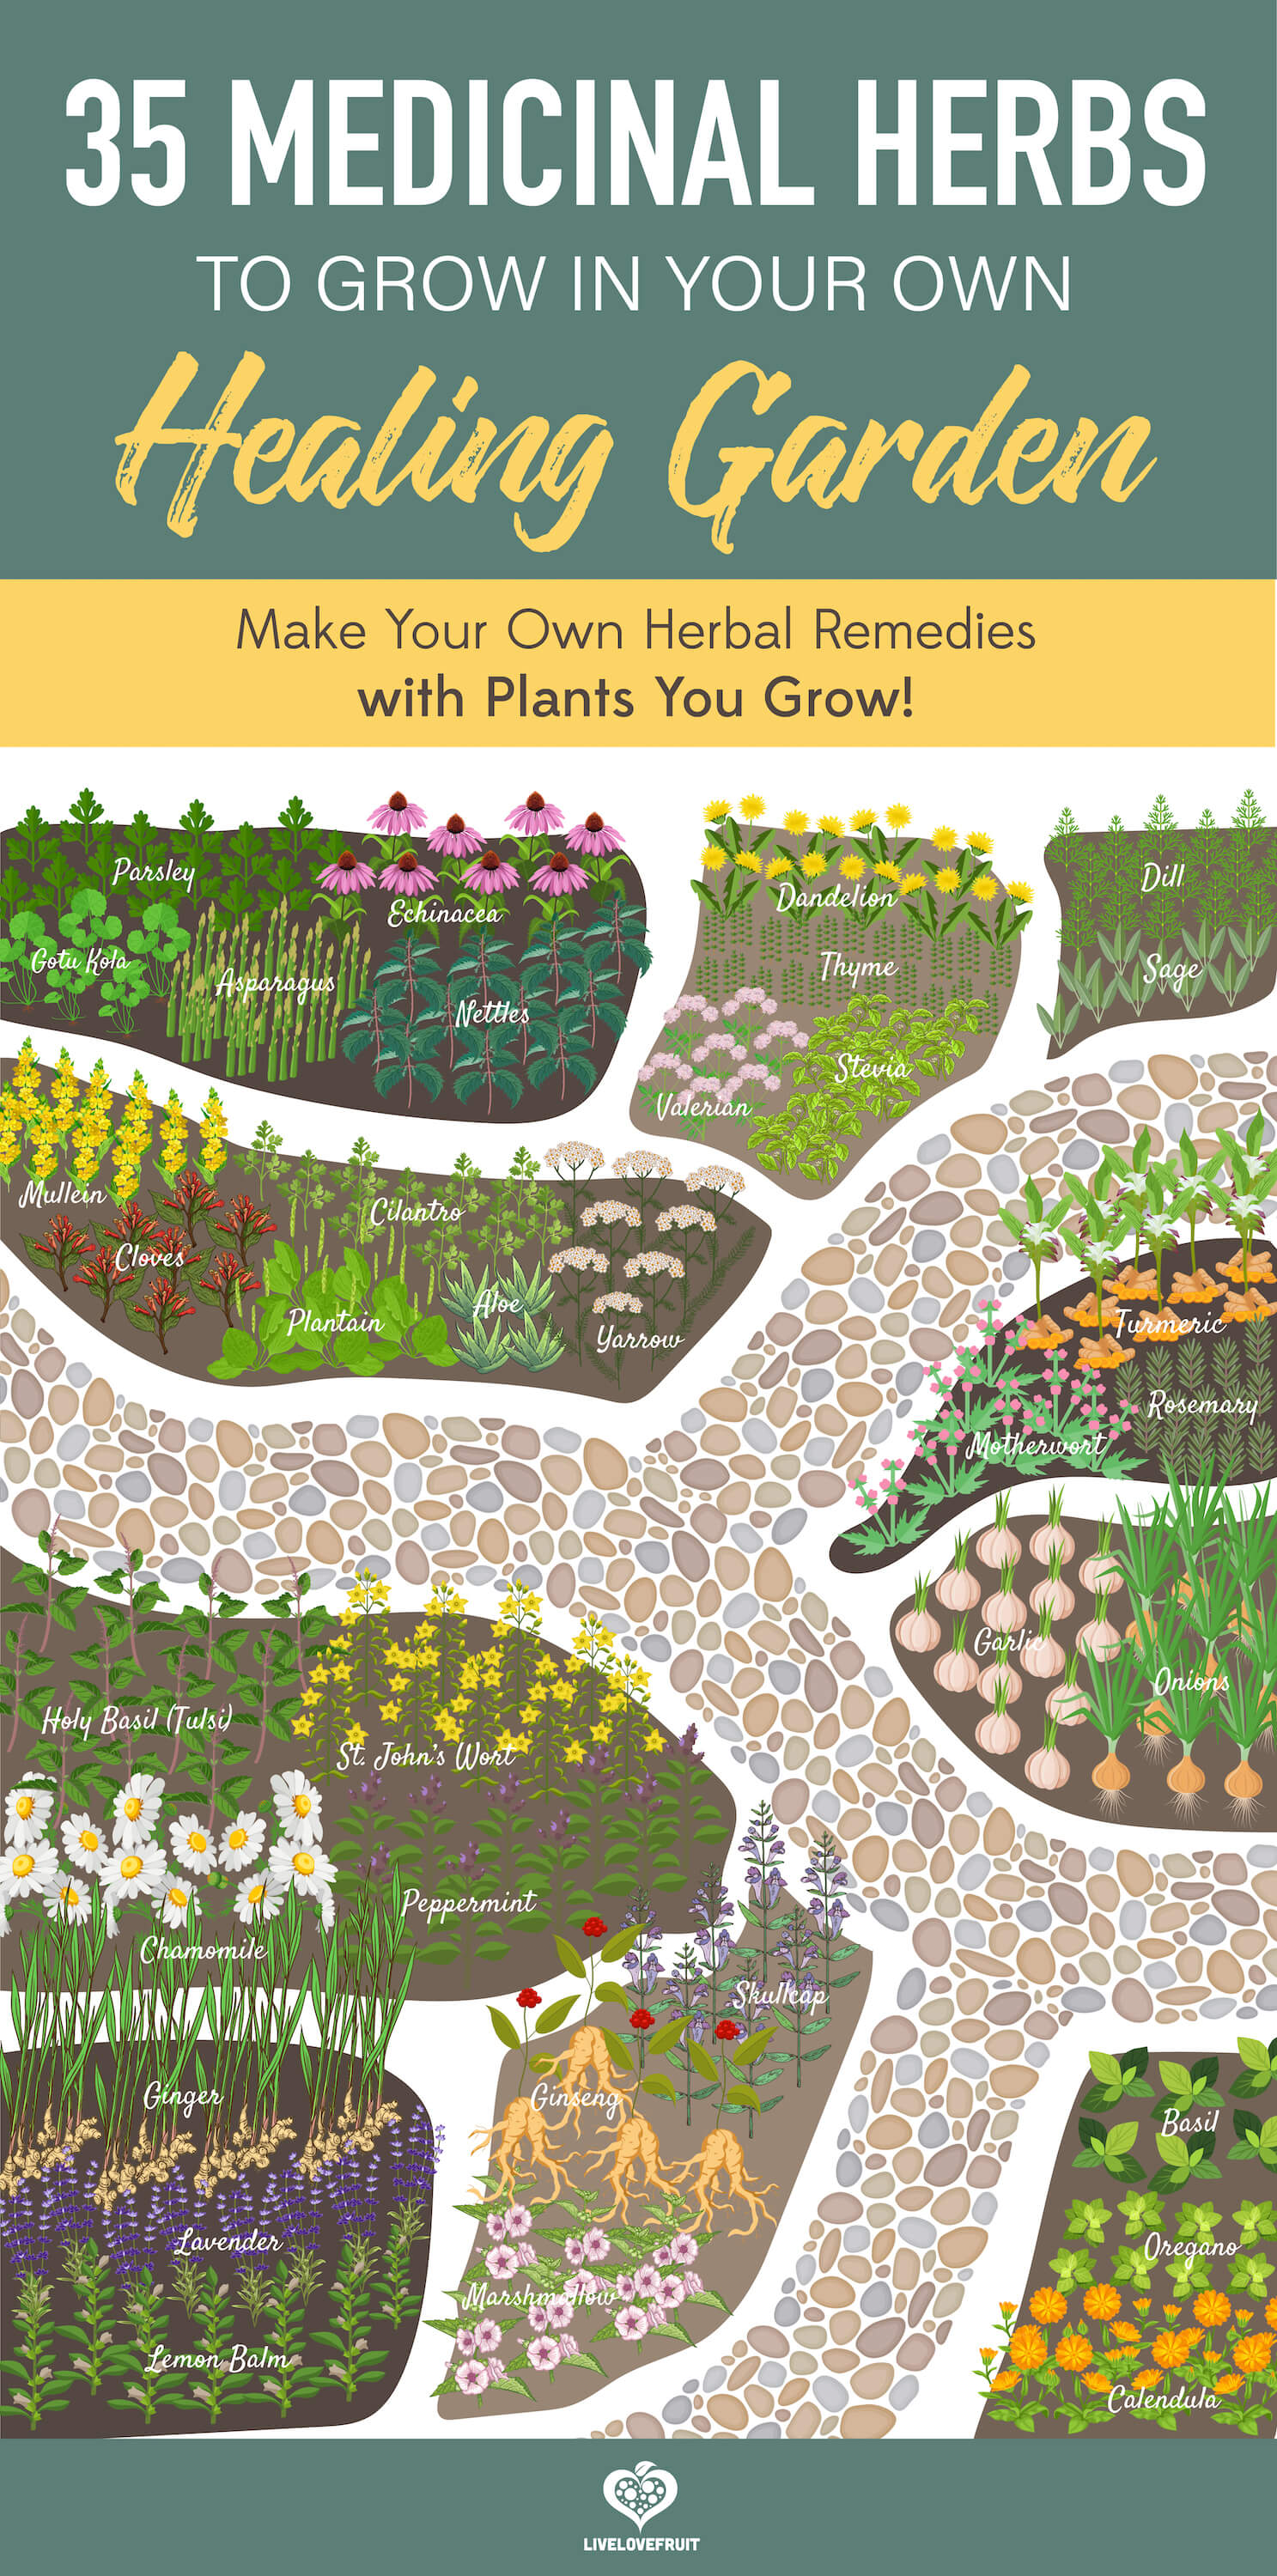 medicinal herb garden illustrated birds eye view with text - 35 medicinal herbs to grow in your own healing garden